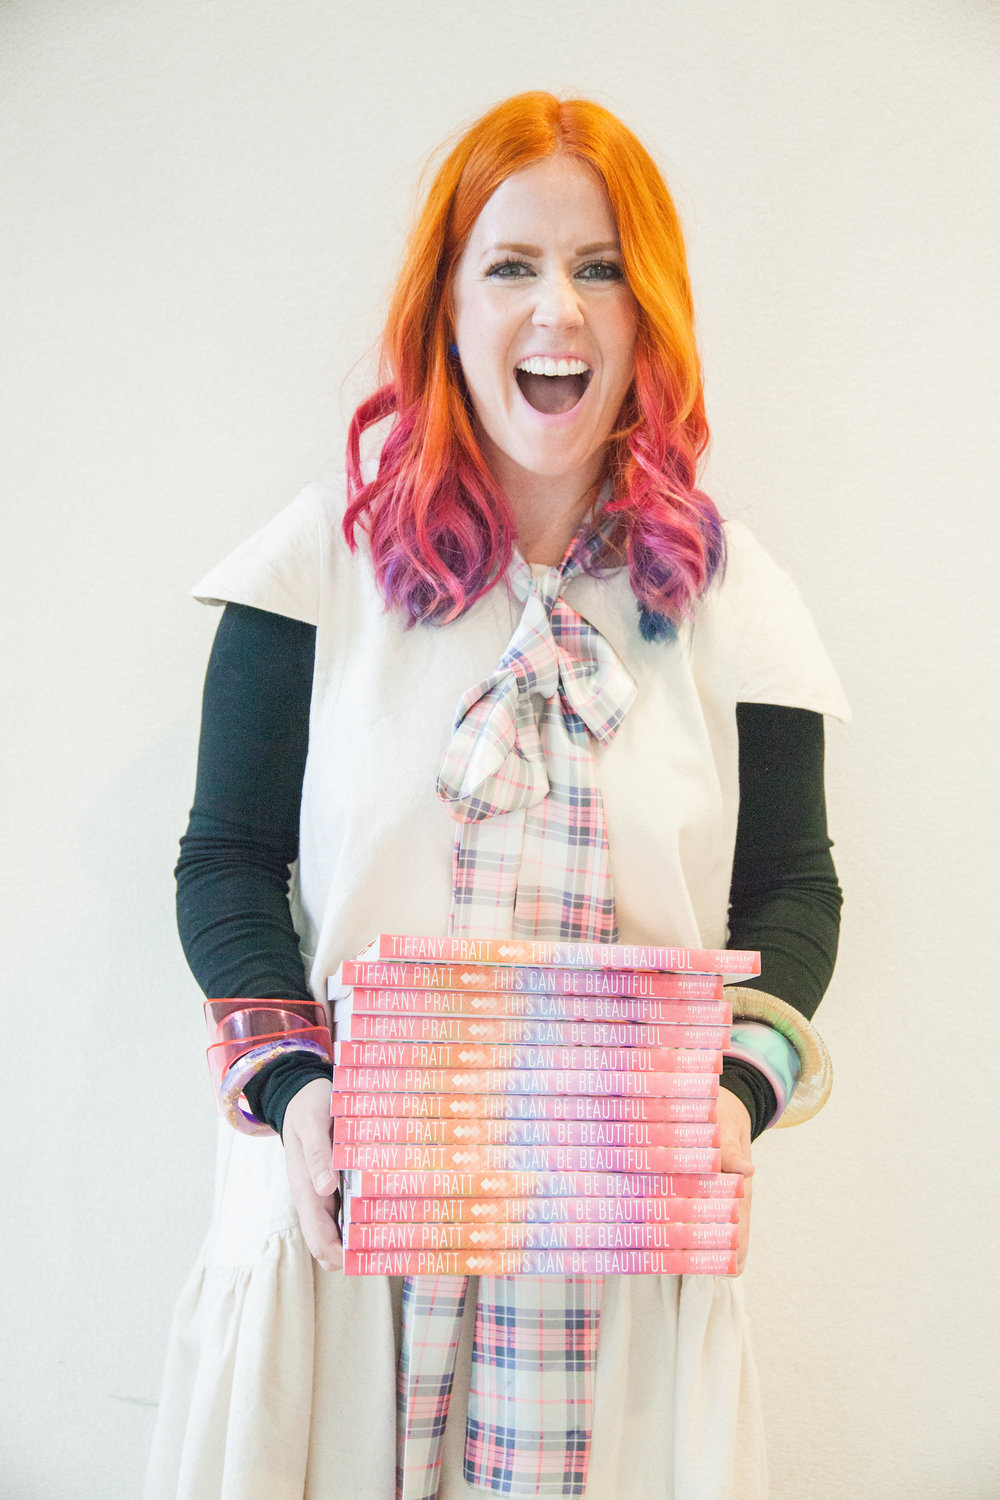 Tiffany-Pratt-holding-stack-of-books-This-Can-Be-Beautiful-at-BlogPodium-LLB-Creative-Gooseberry-Studios.jpg